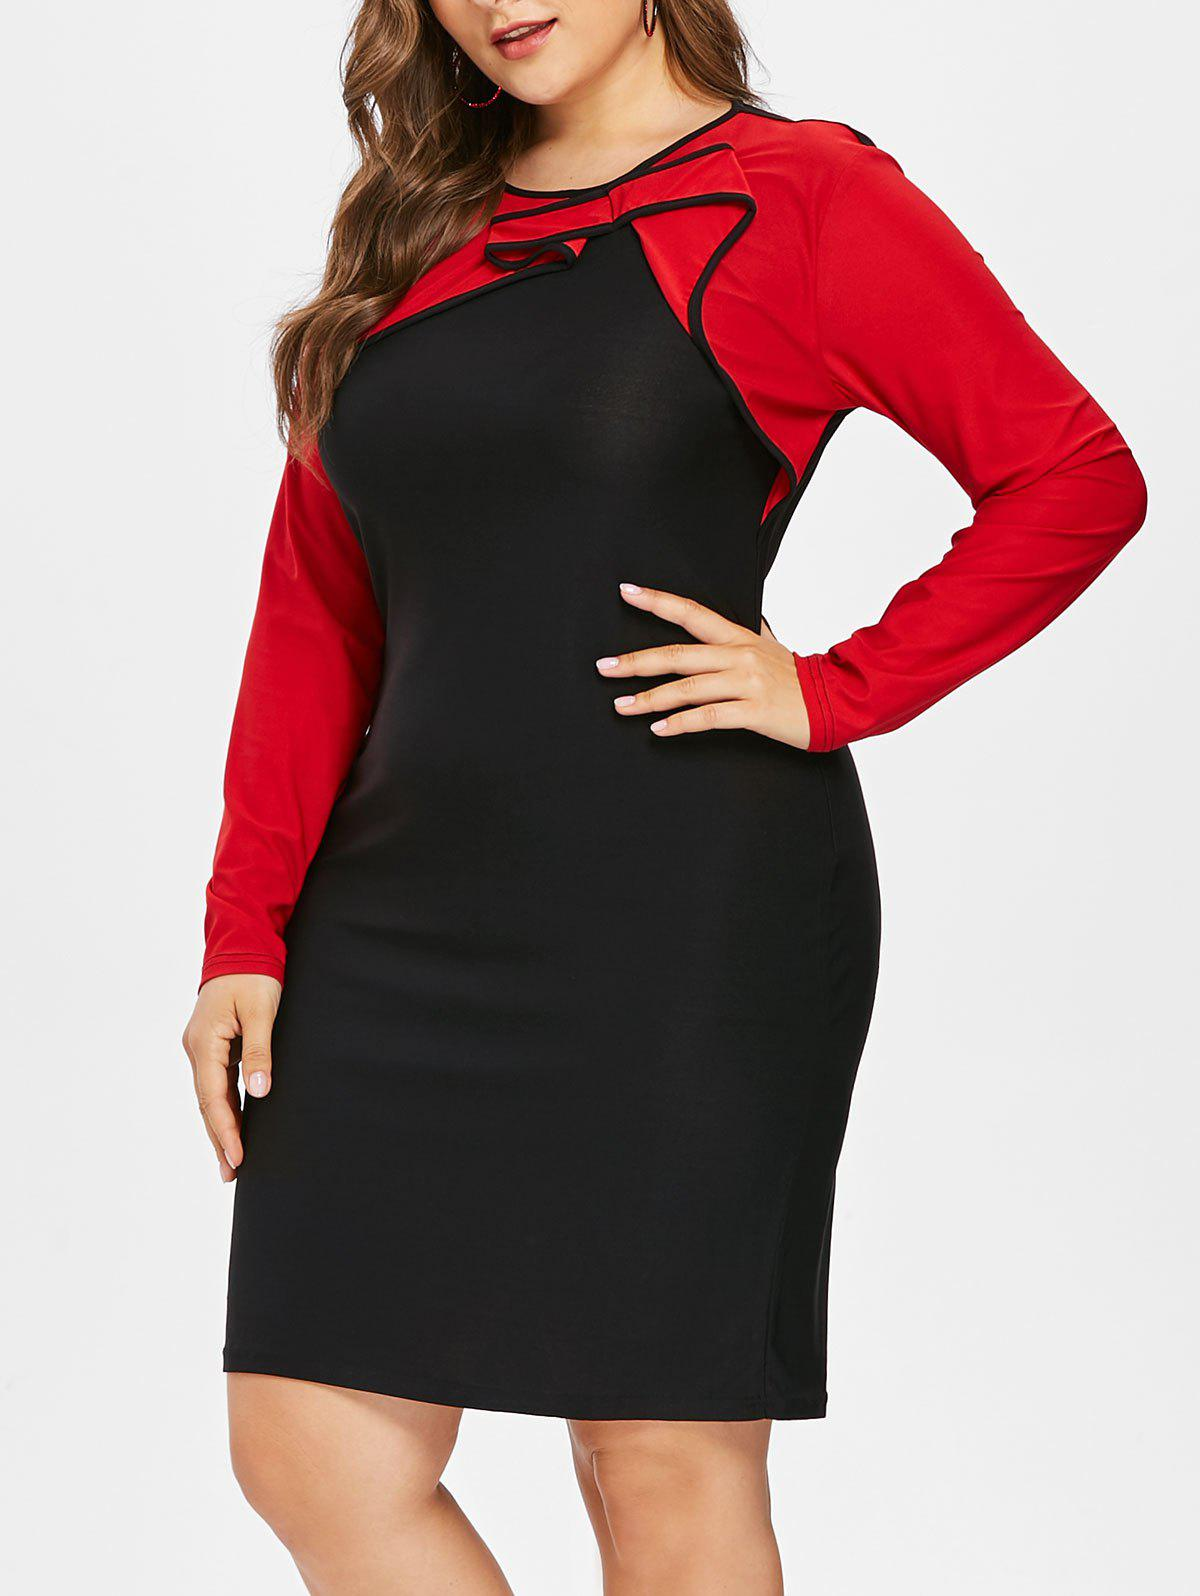 Color Block Plus Size Bodycon Mini Dress, Black